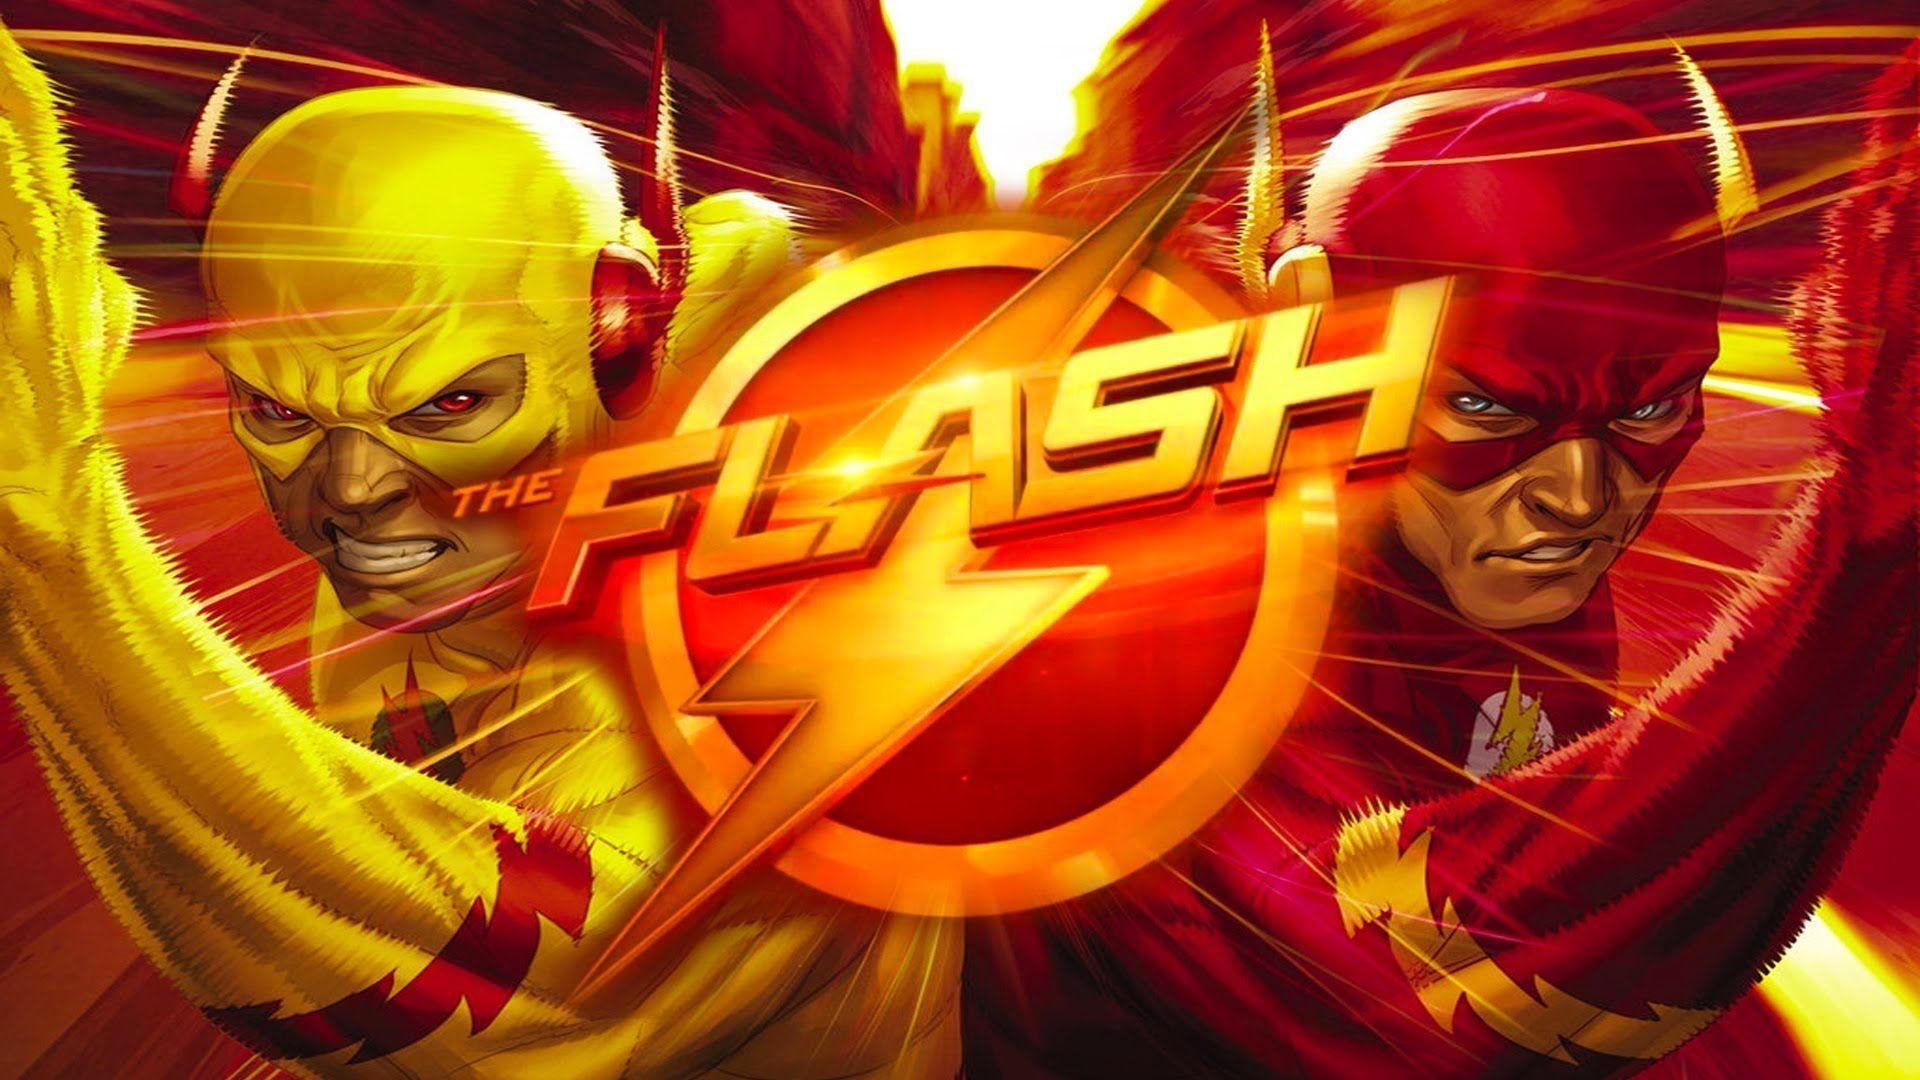 The Flash background wallpaper